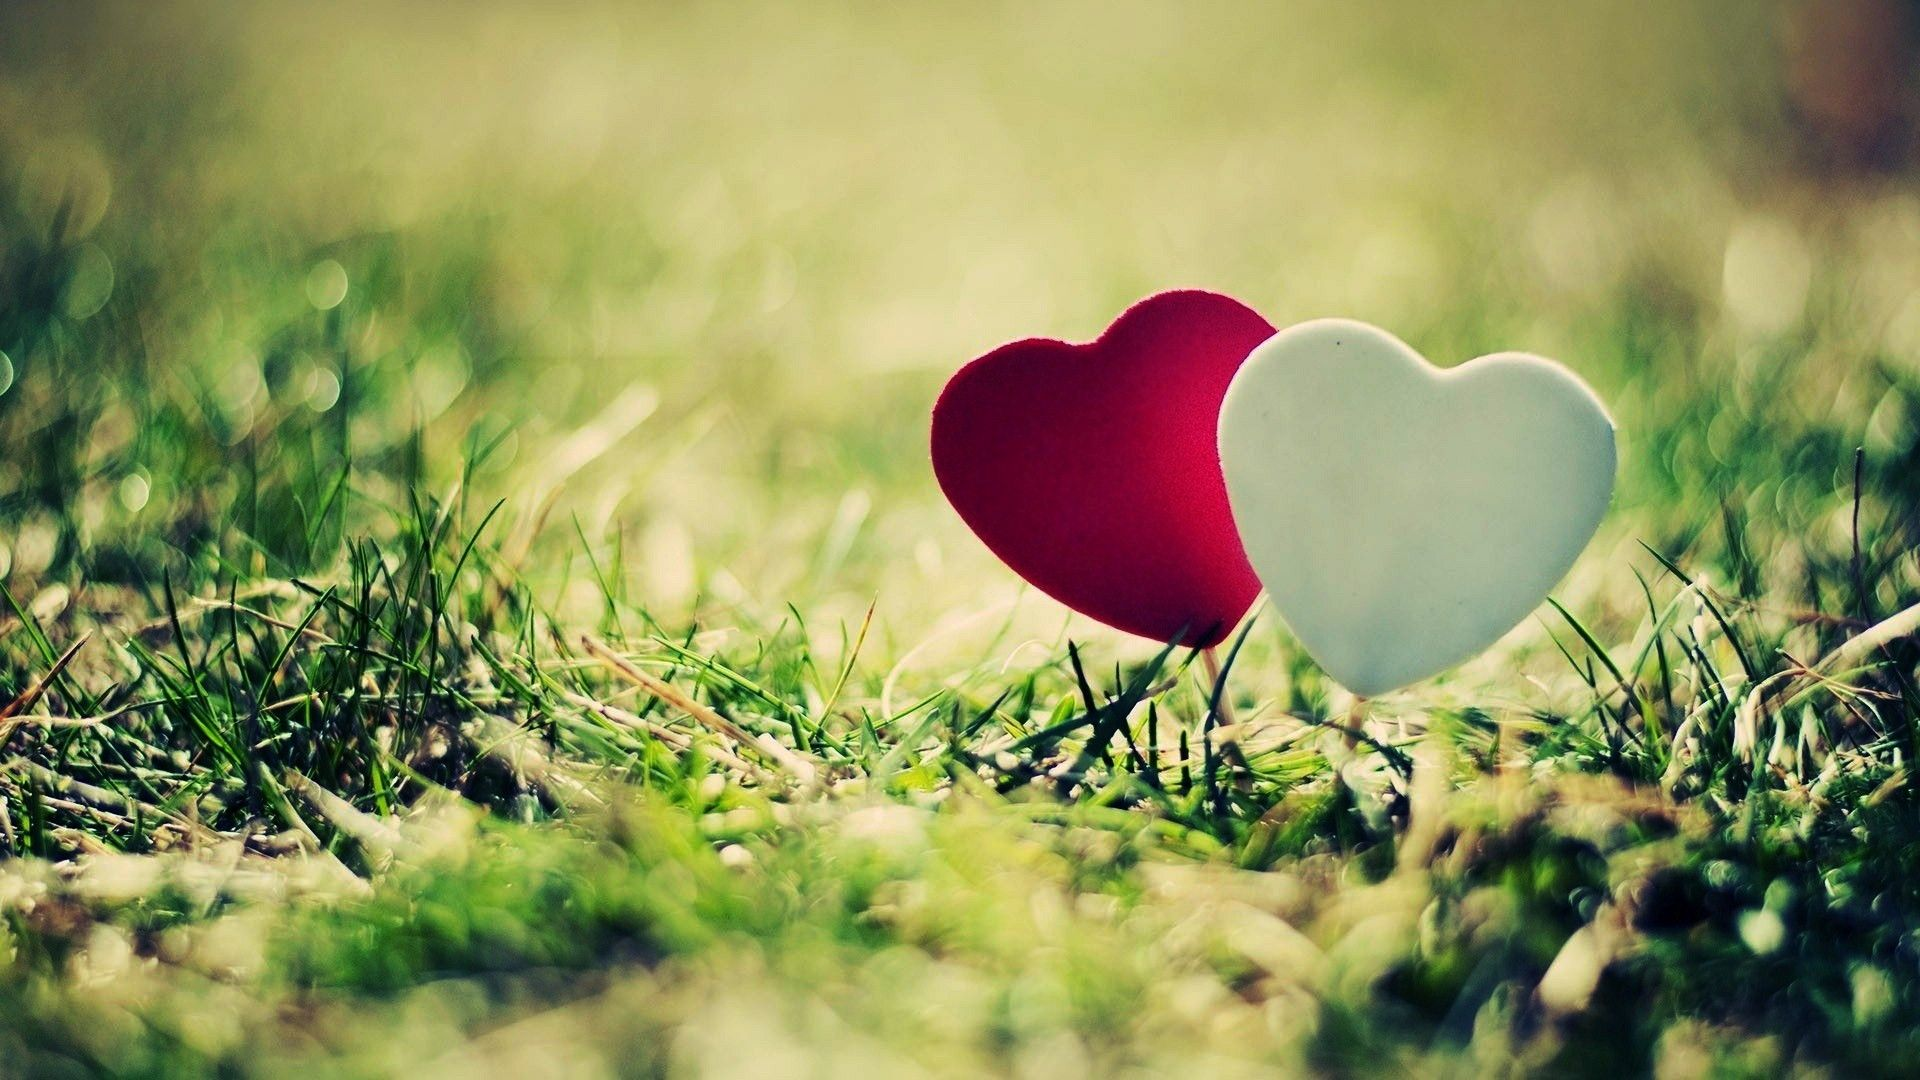 New English Love Wallpaper : Love and Heart Wallpapers Free Download HD Latest Beautiful Images HD Wallpapers Pinterest ...